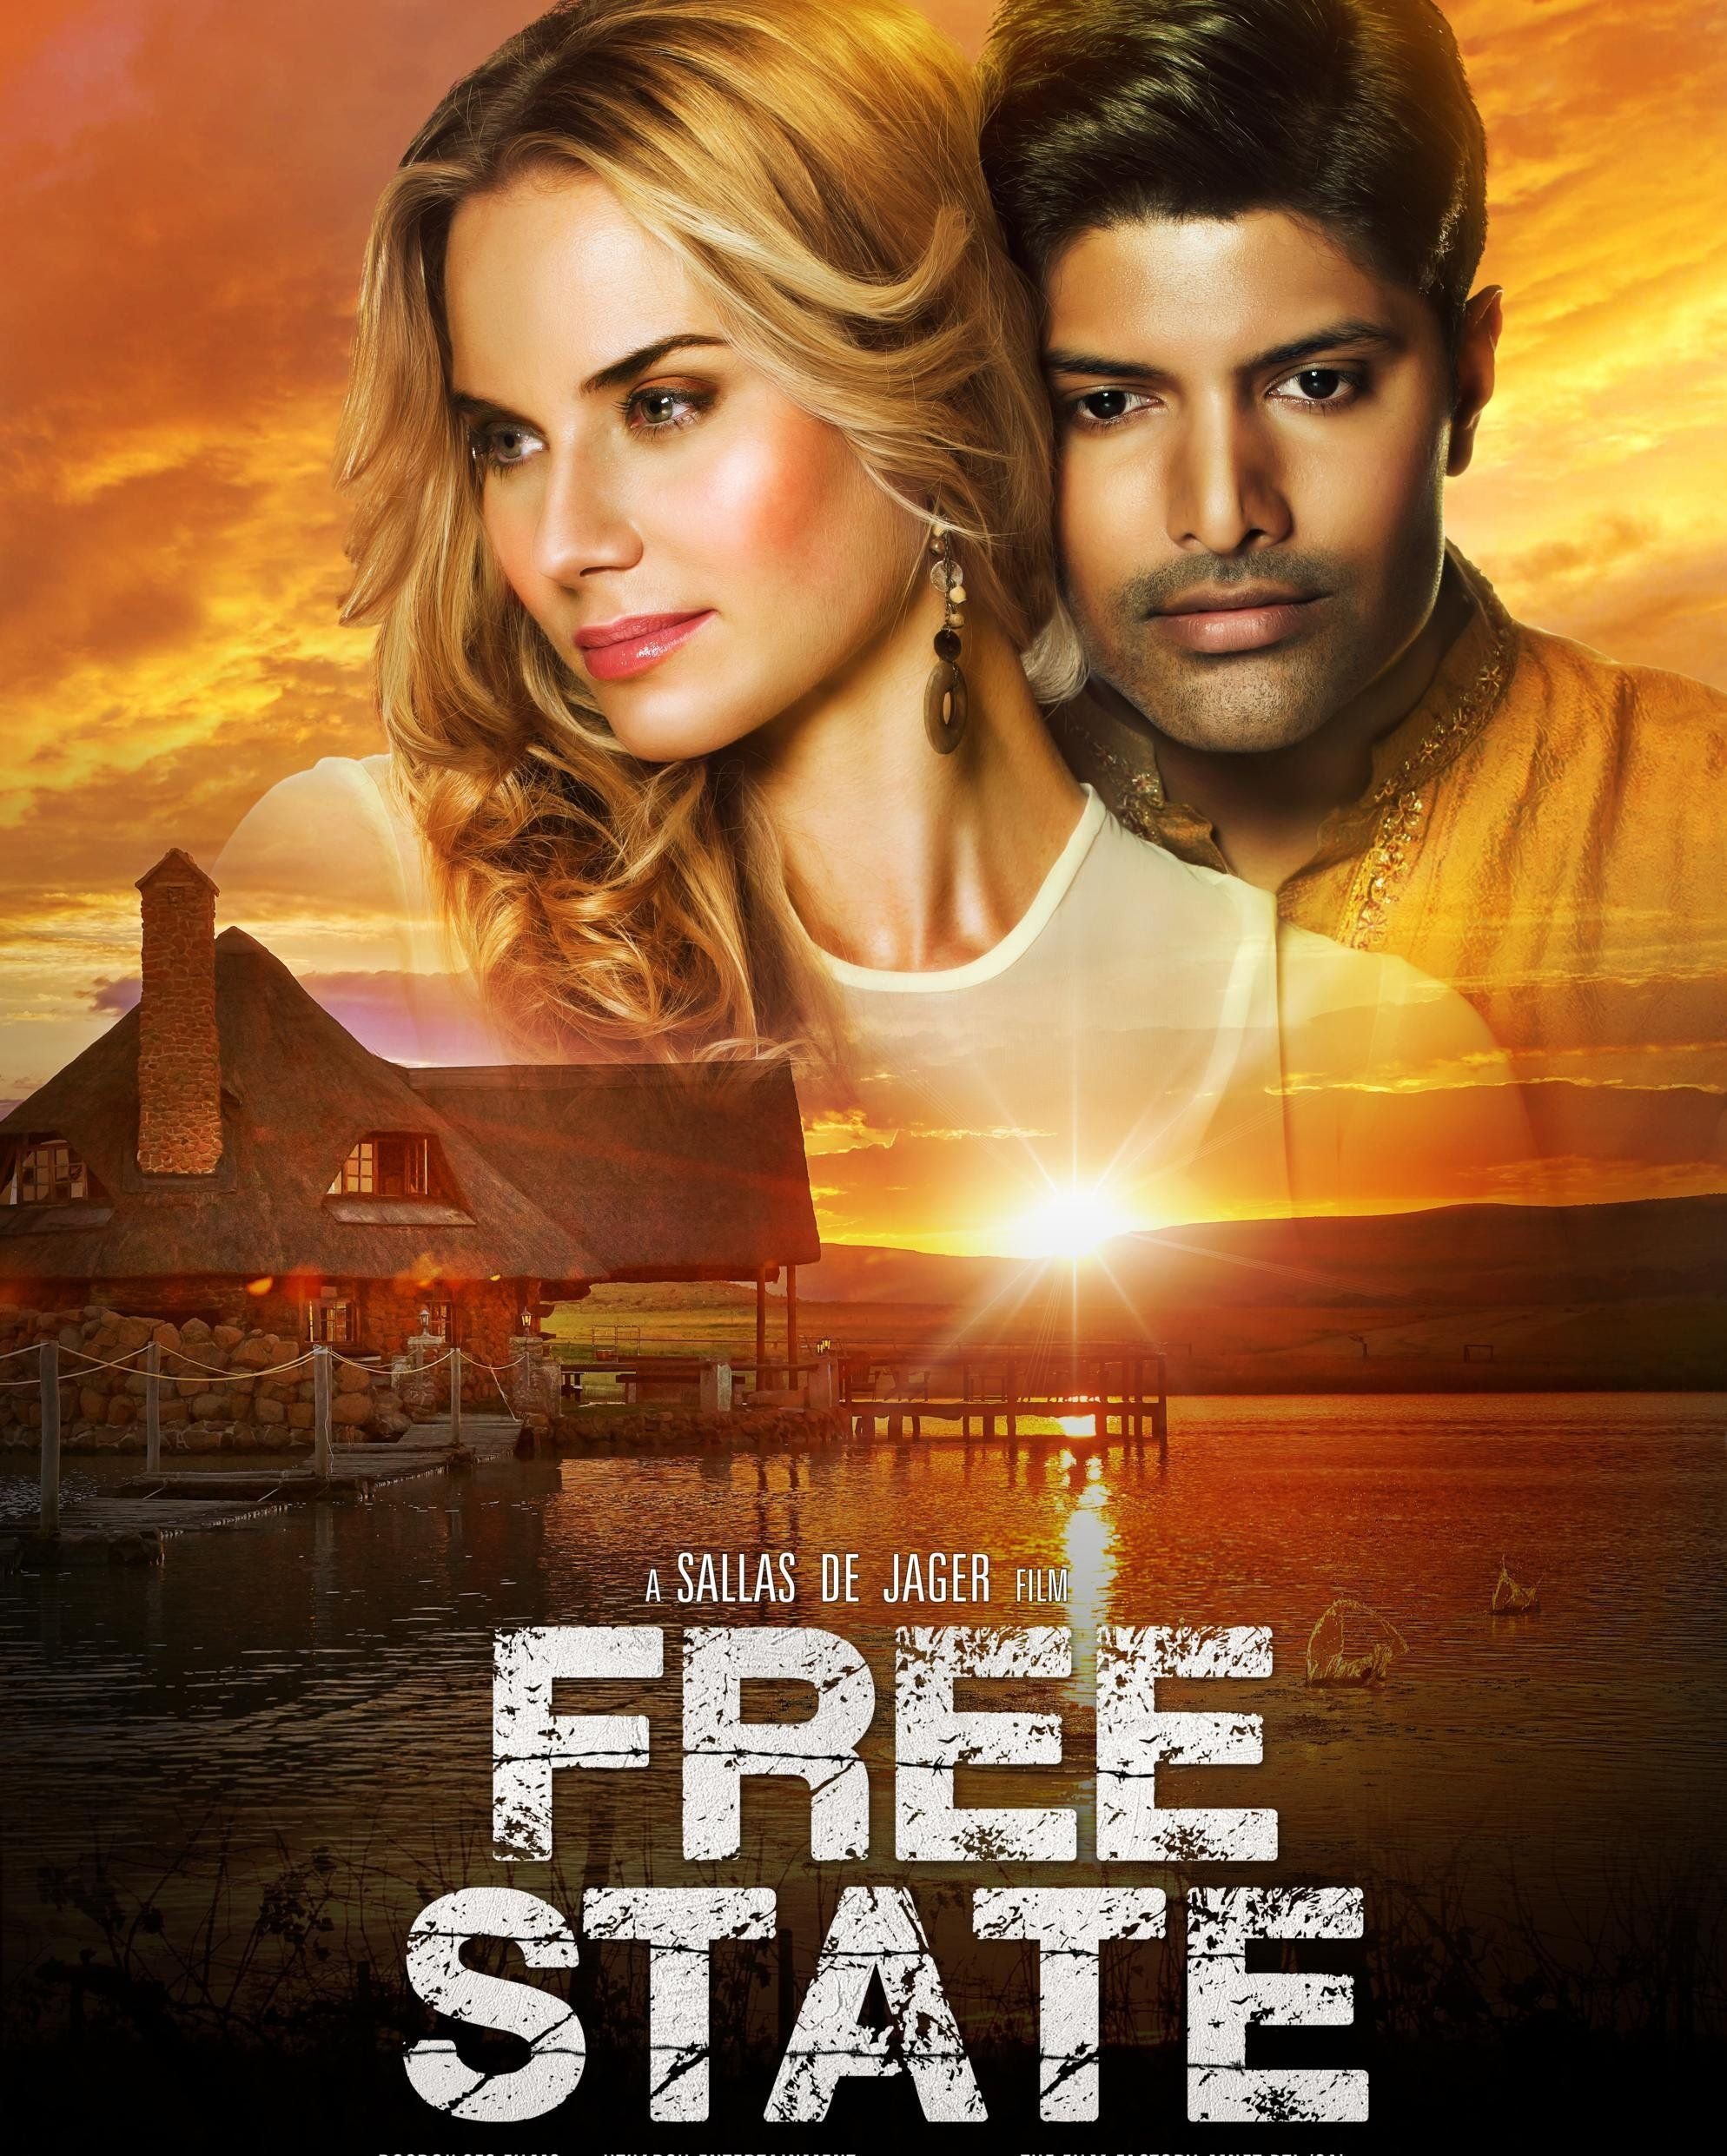 Free State Movie Trailer African movies, Free state